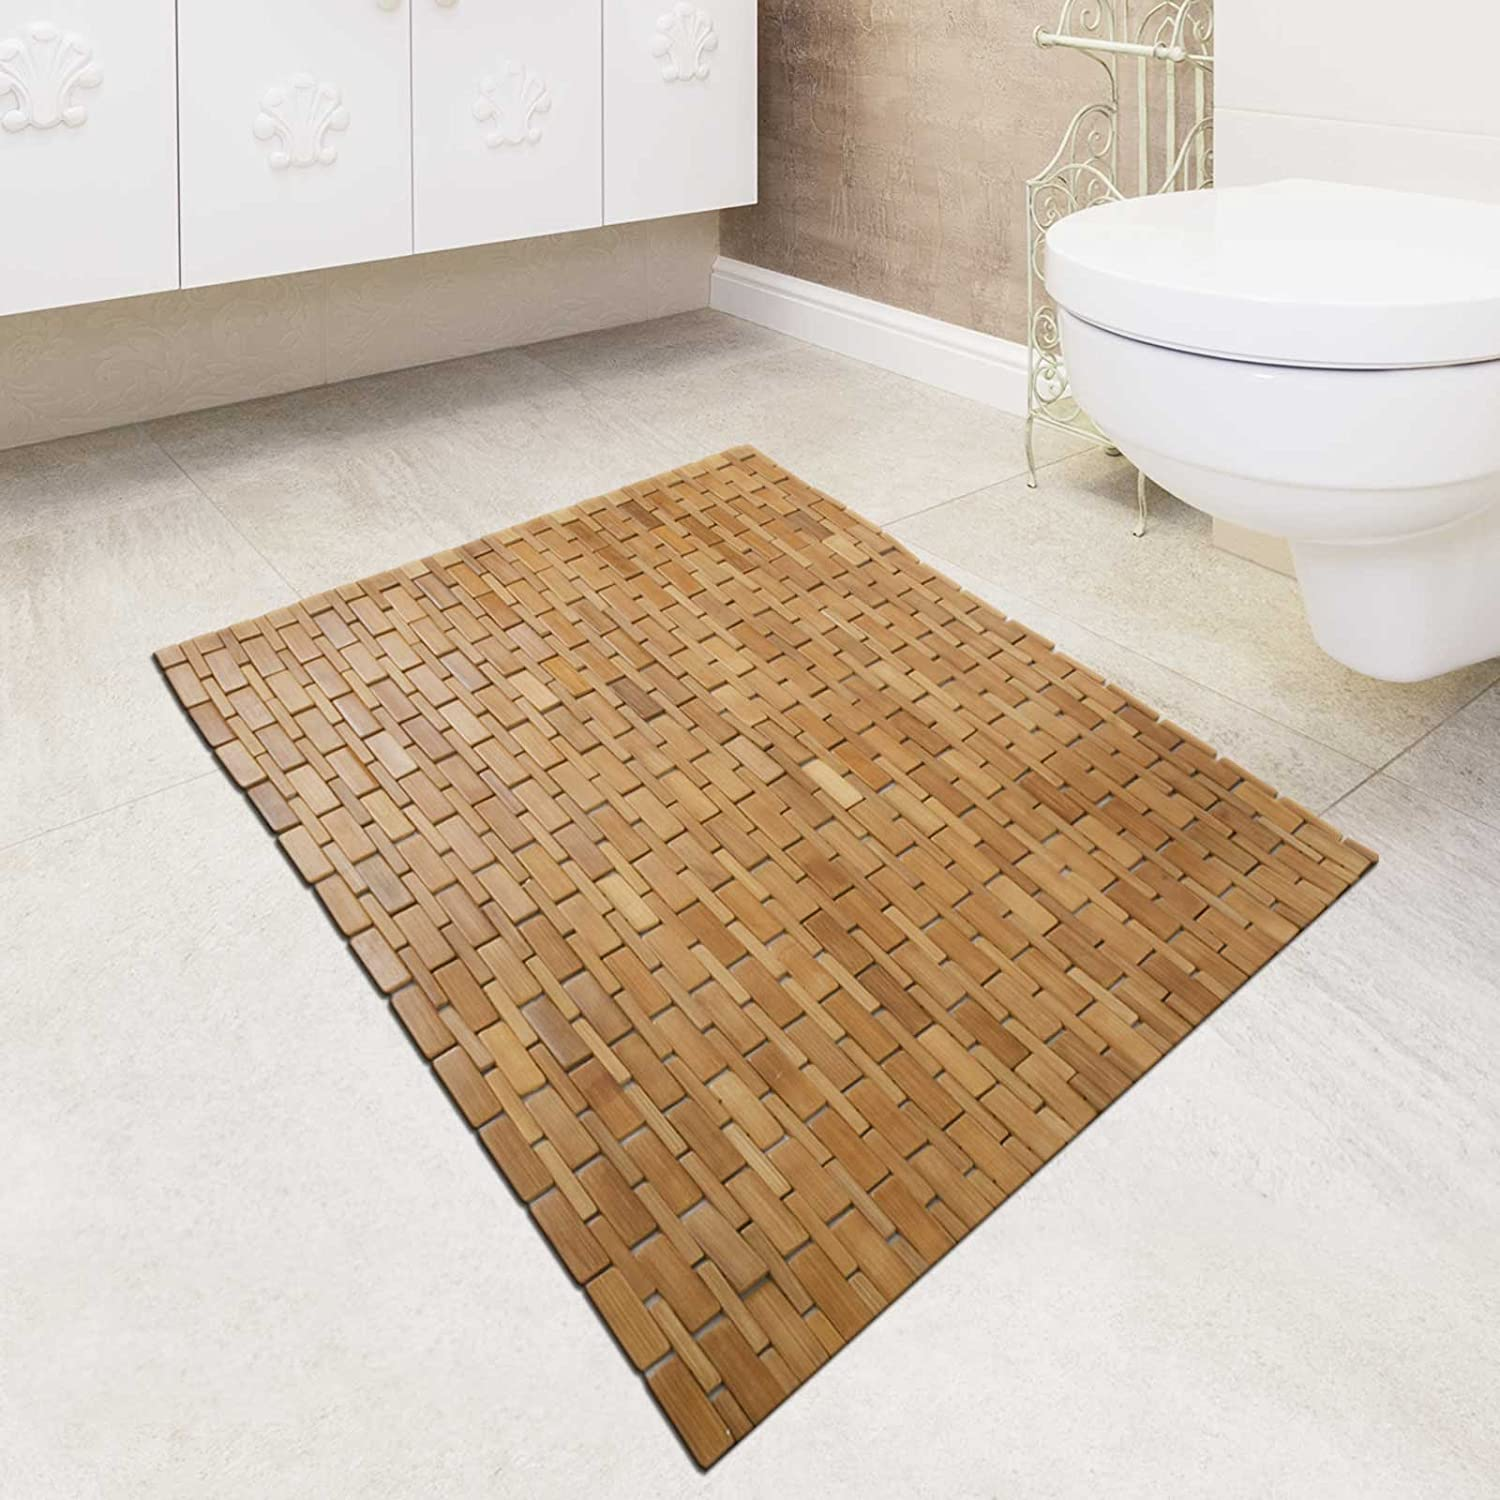 of mat mats bamboo table products freelance shower set plus